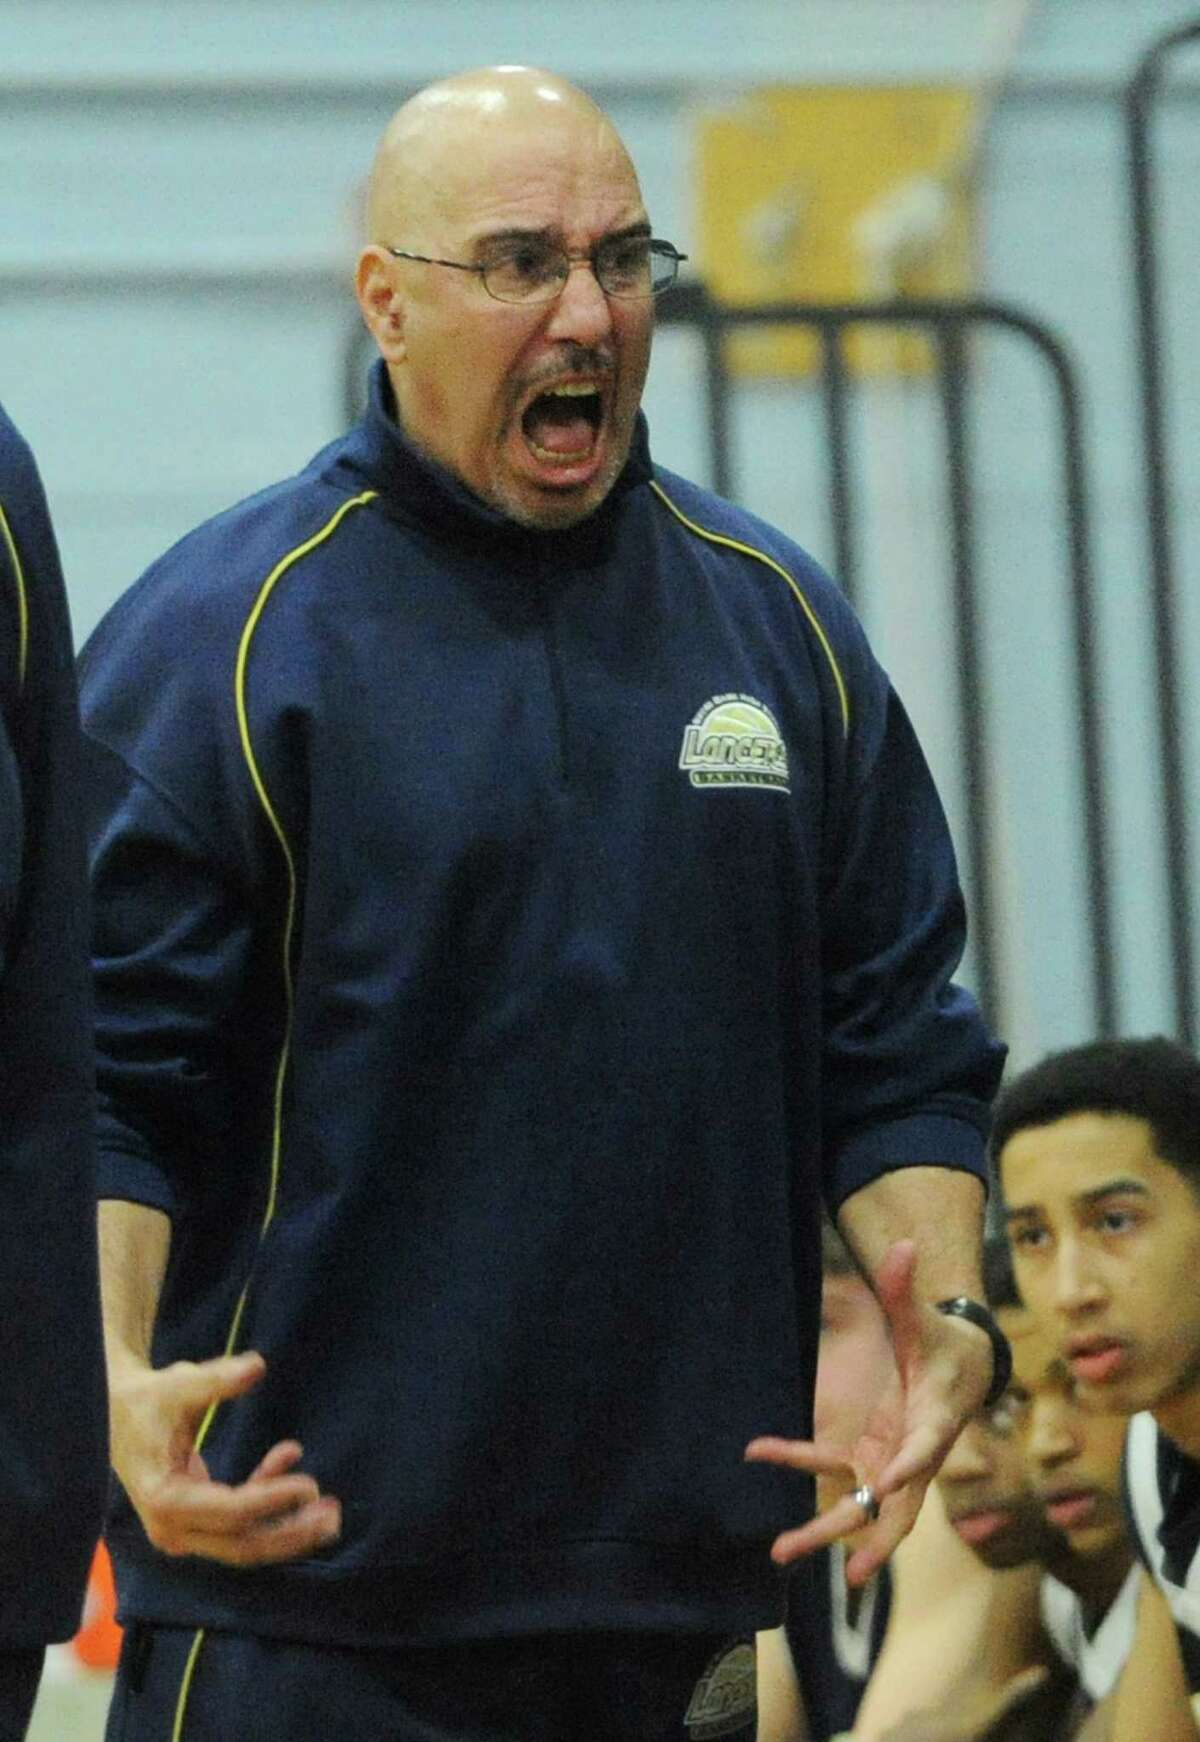 Notre Dame Fairfield coach Vin Laczkoski yells during his team's 72-46 win over New Fairfield in the high school boys basketball game at New Fairfield High School in New Fairfield, Conn. on Thursday, Jan. 30, 2014.